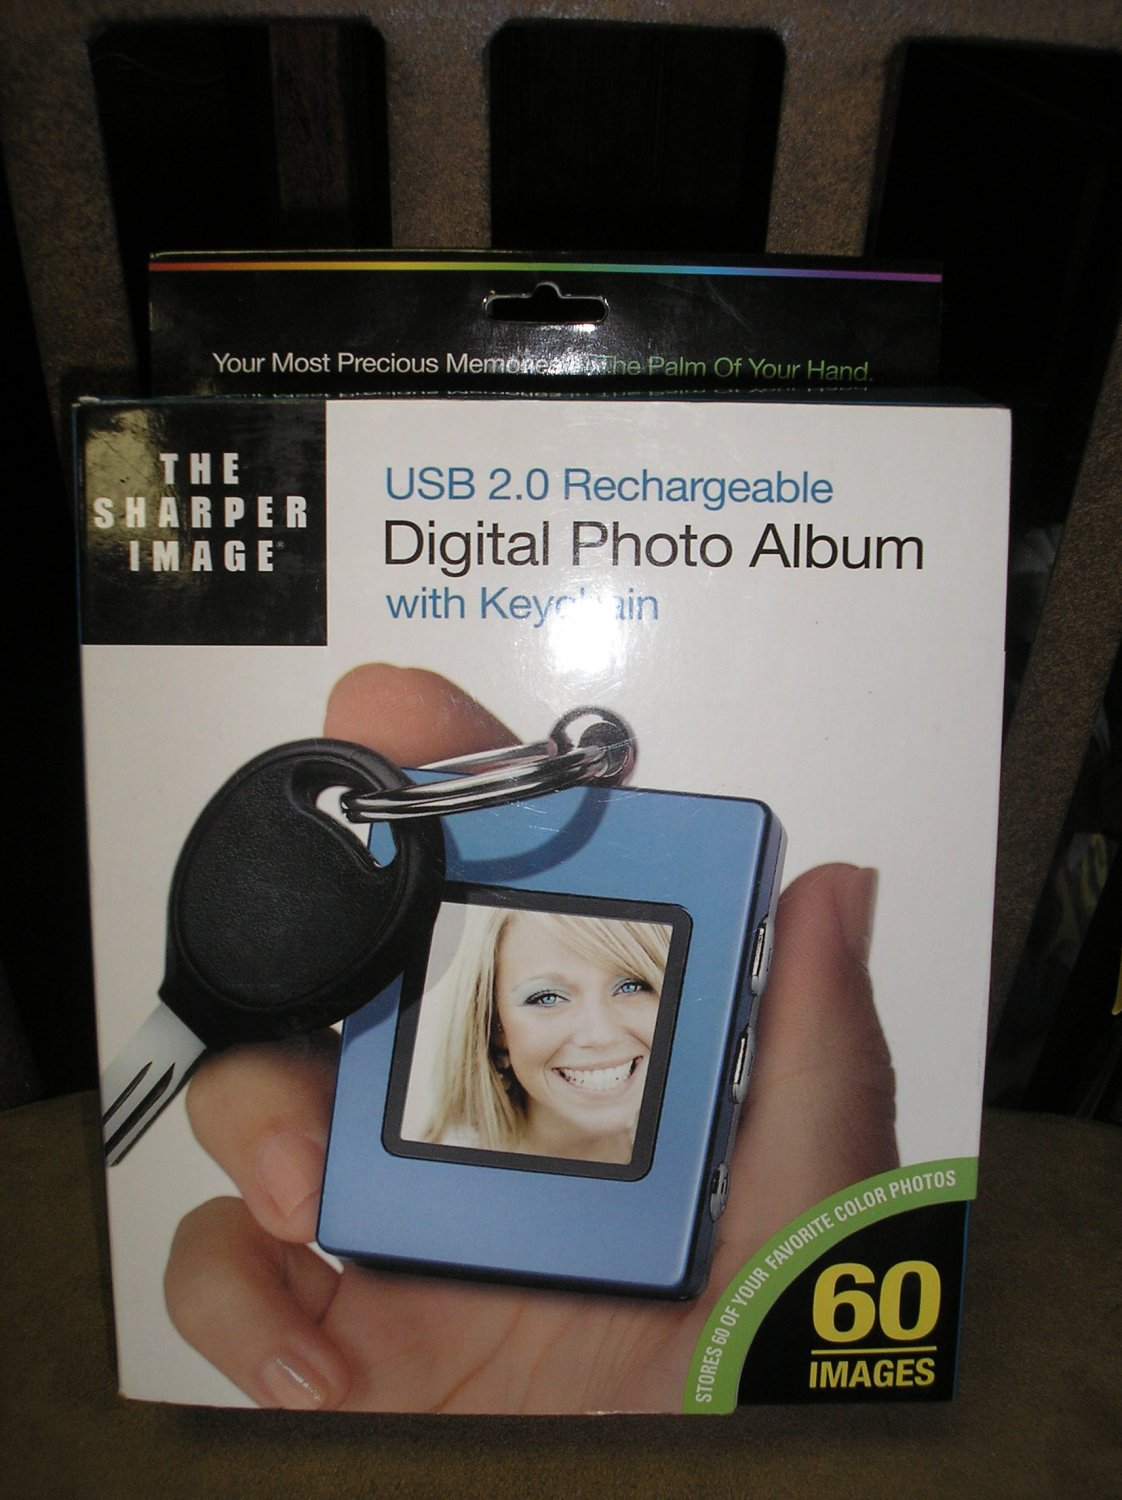 THE SHARPER IMAGE DIGITAL PHOTO KEYCHAIN by The Sharper Image - BRAND NEW!